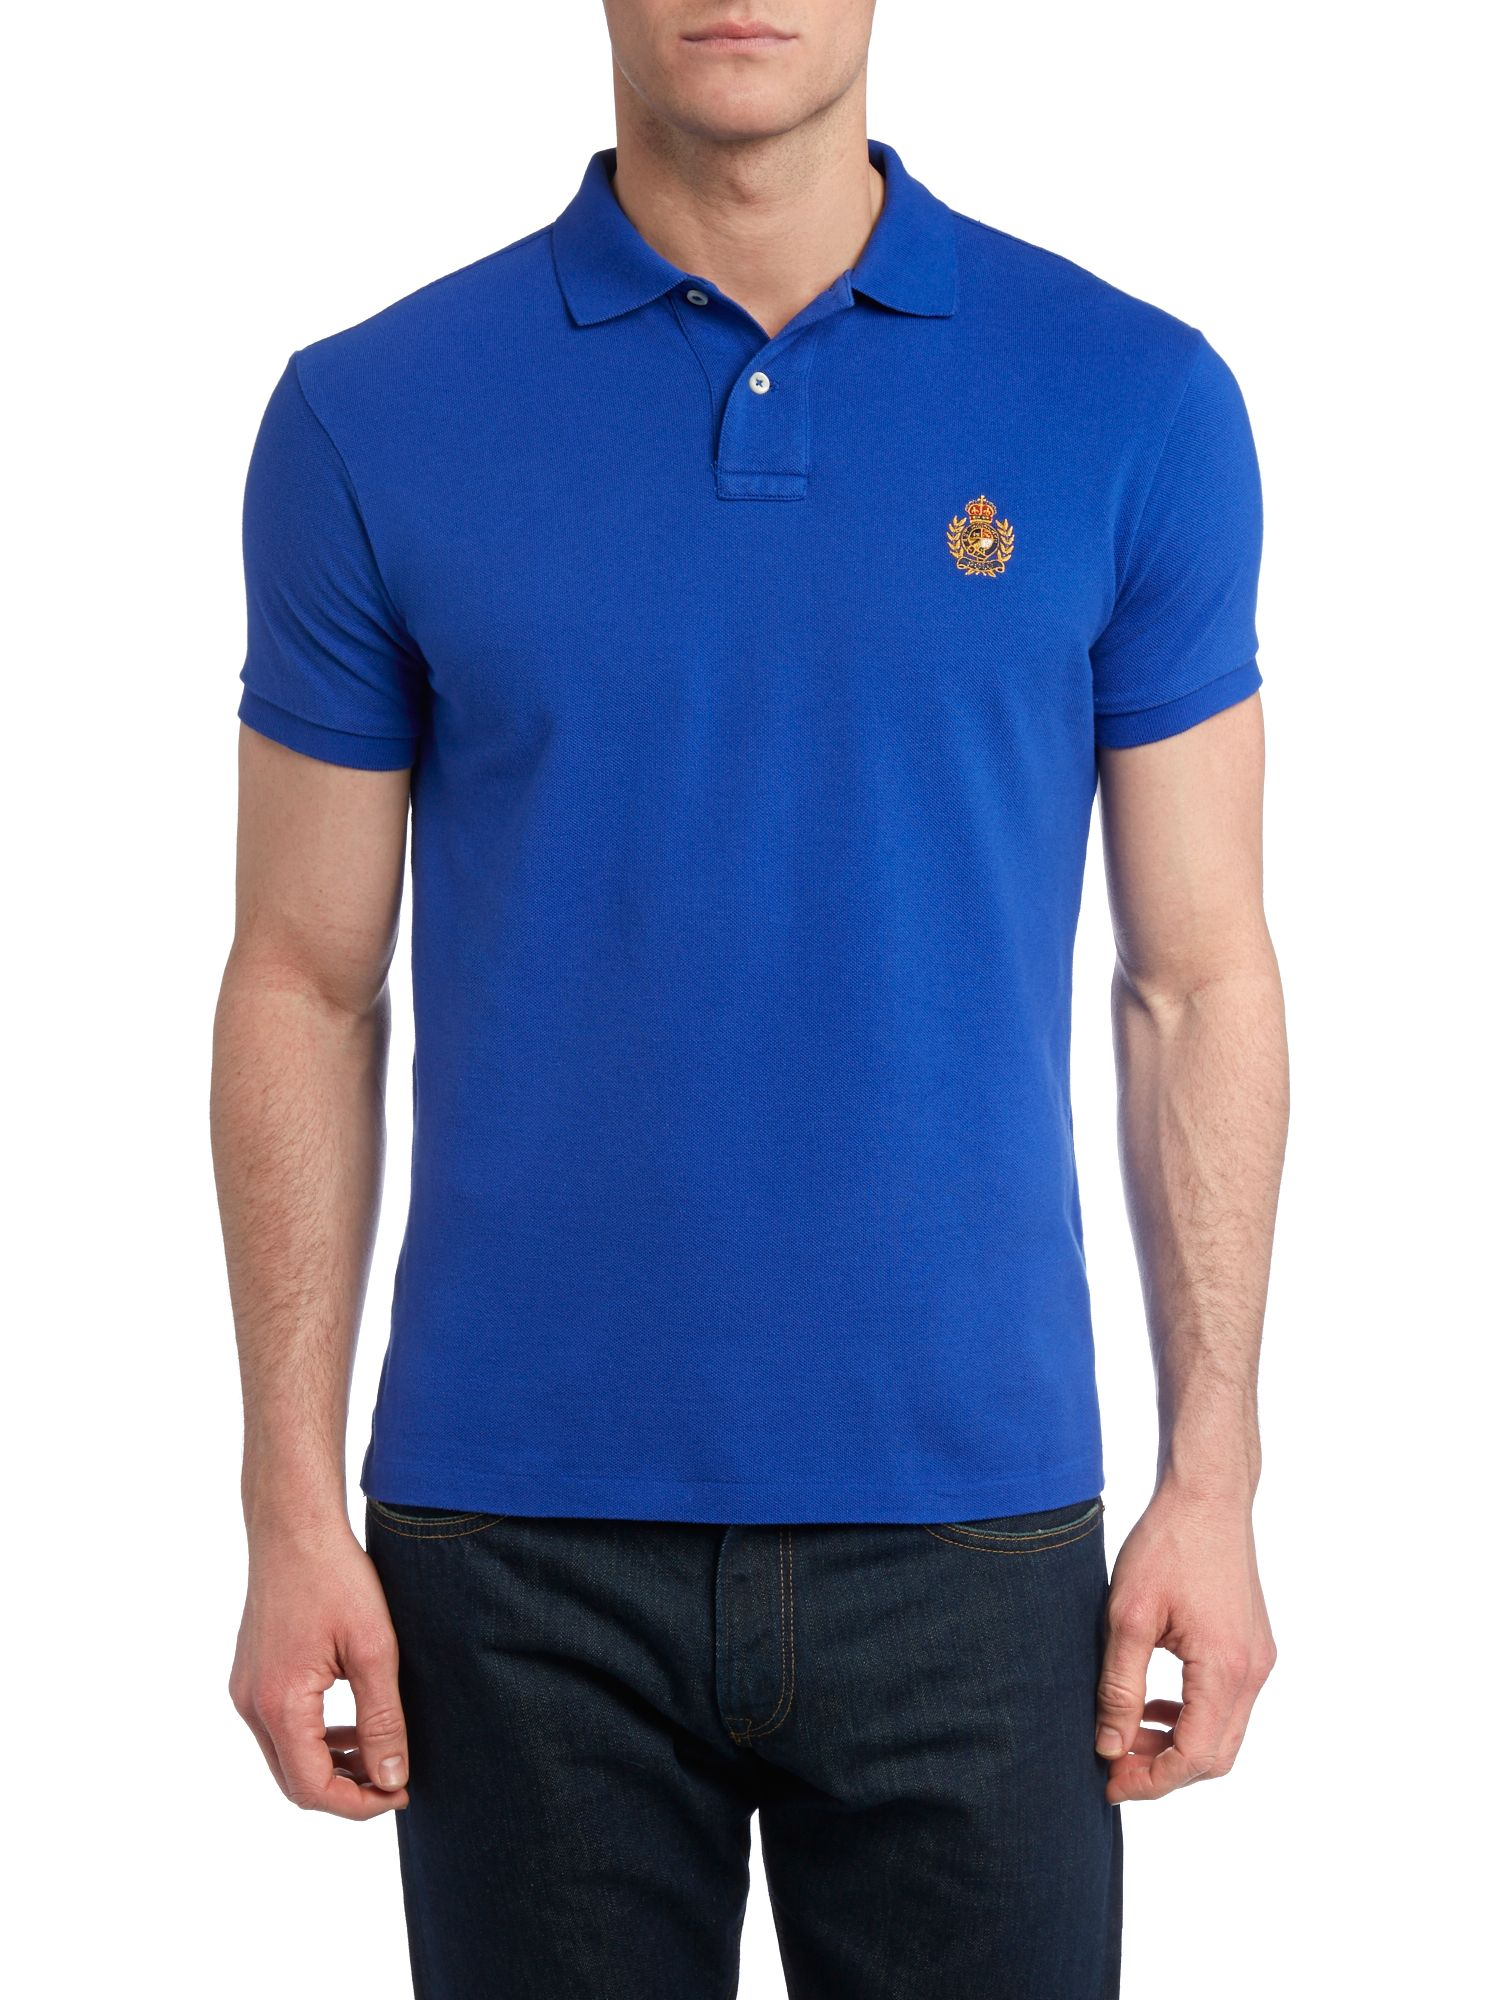 Custom fit crest pocket polo shirt